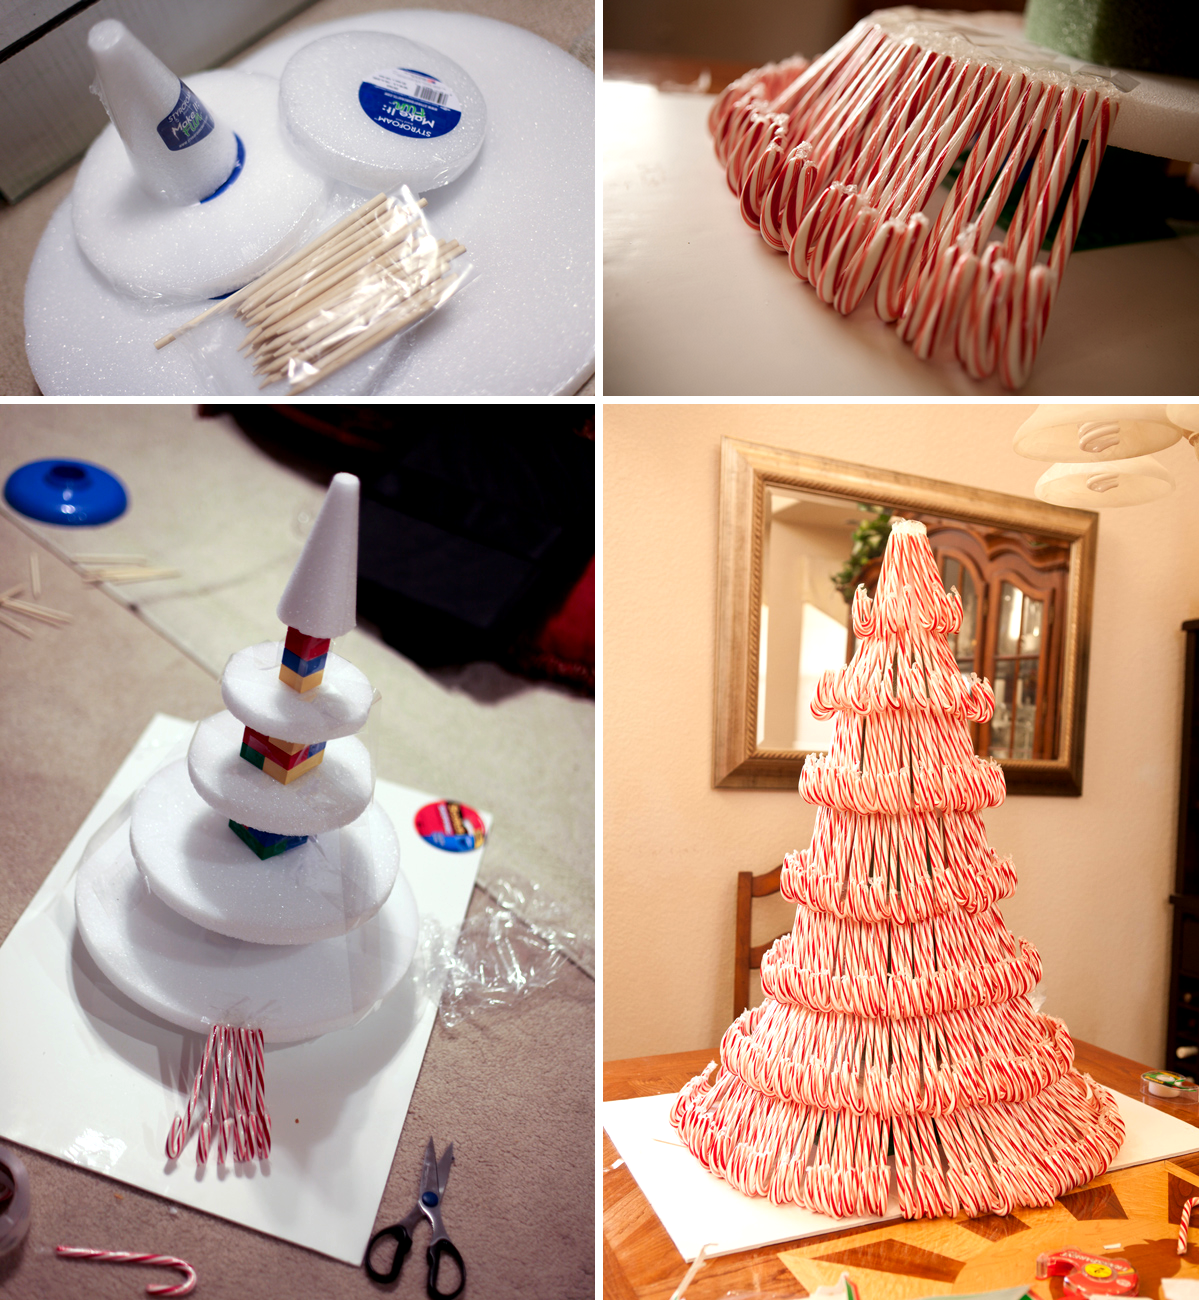 Idée déco : DIY Tuto sapin en candy canes ! Christmas Tree via http://amenphotography.com/blog/2010/12/our-candy-cane-christmas-tree-project/